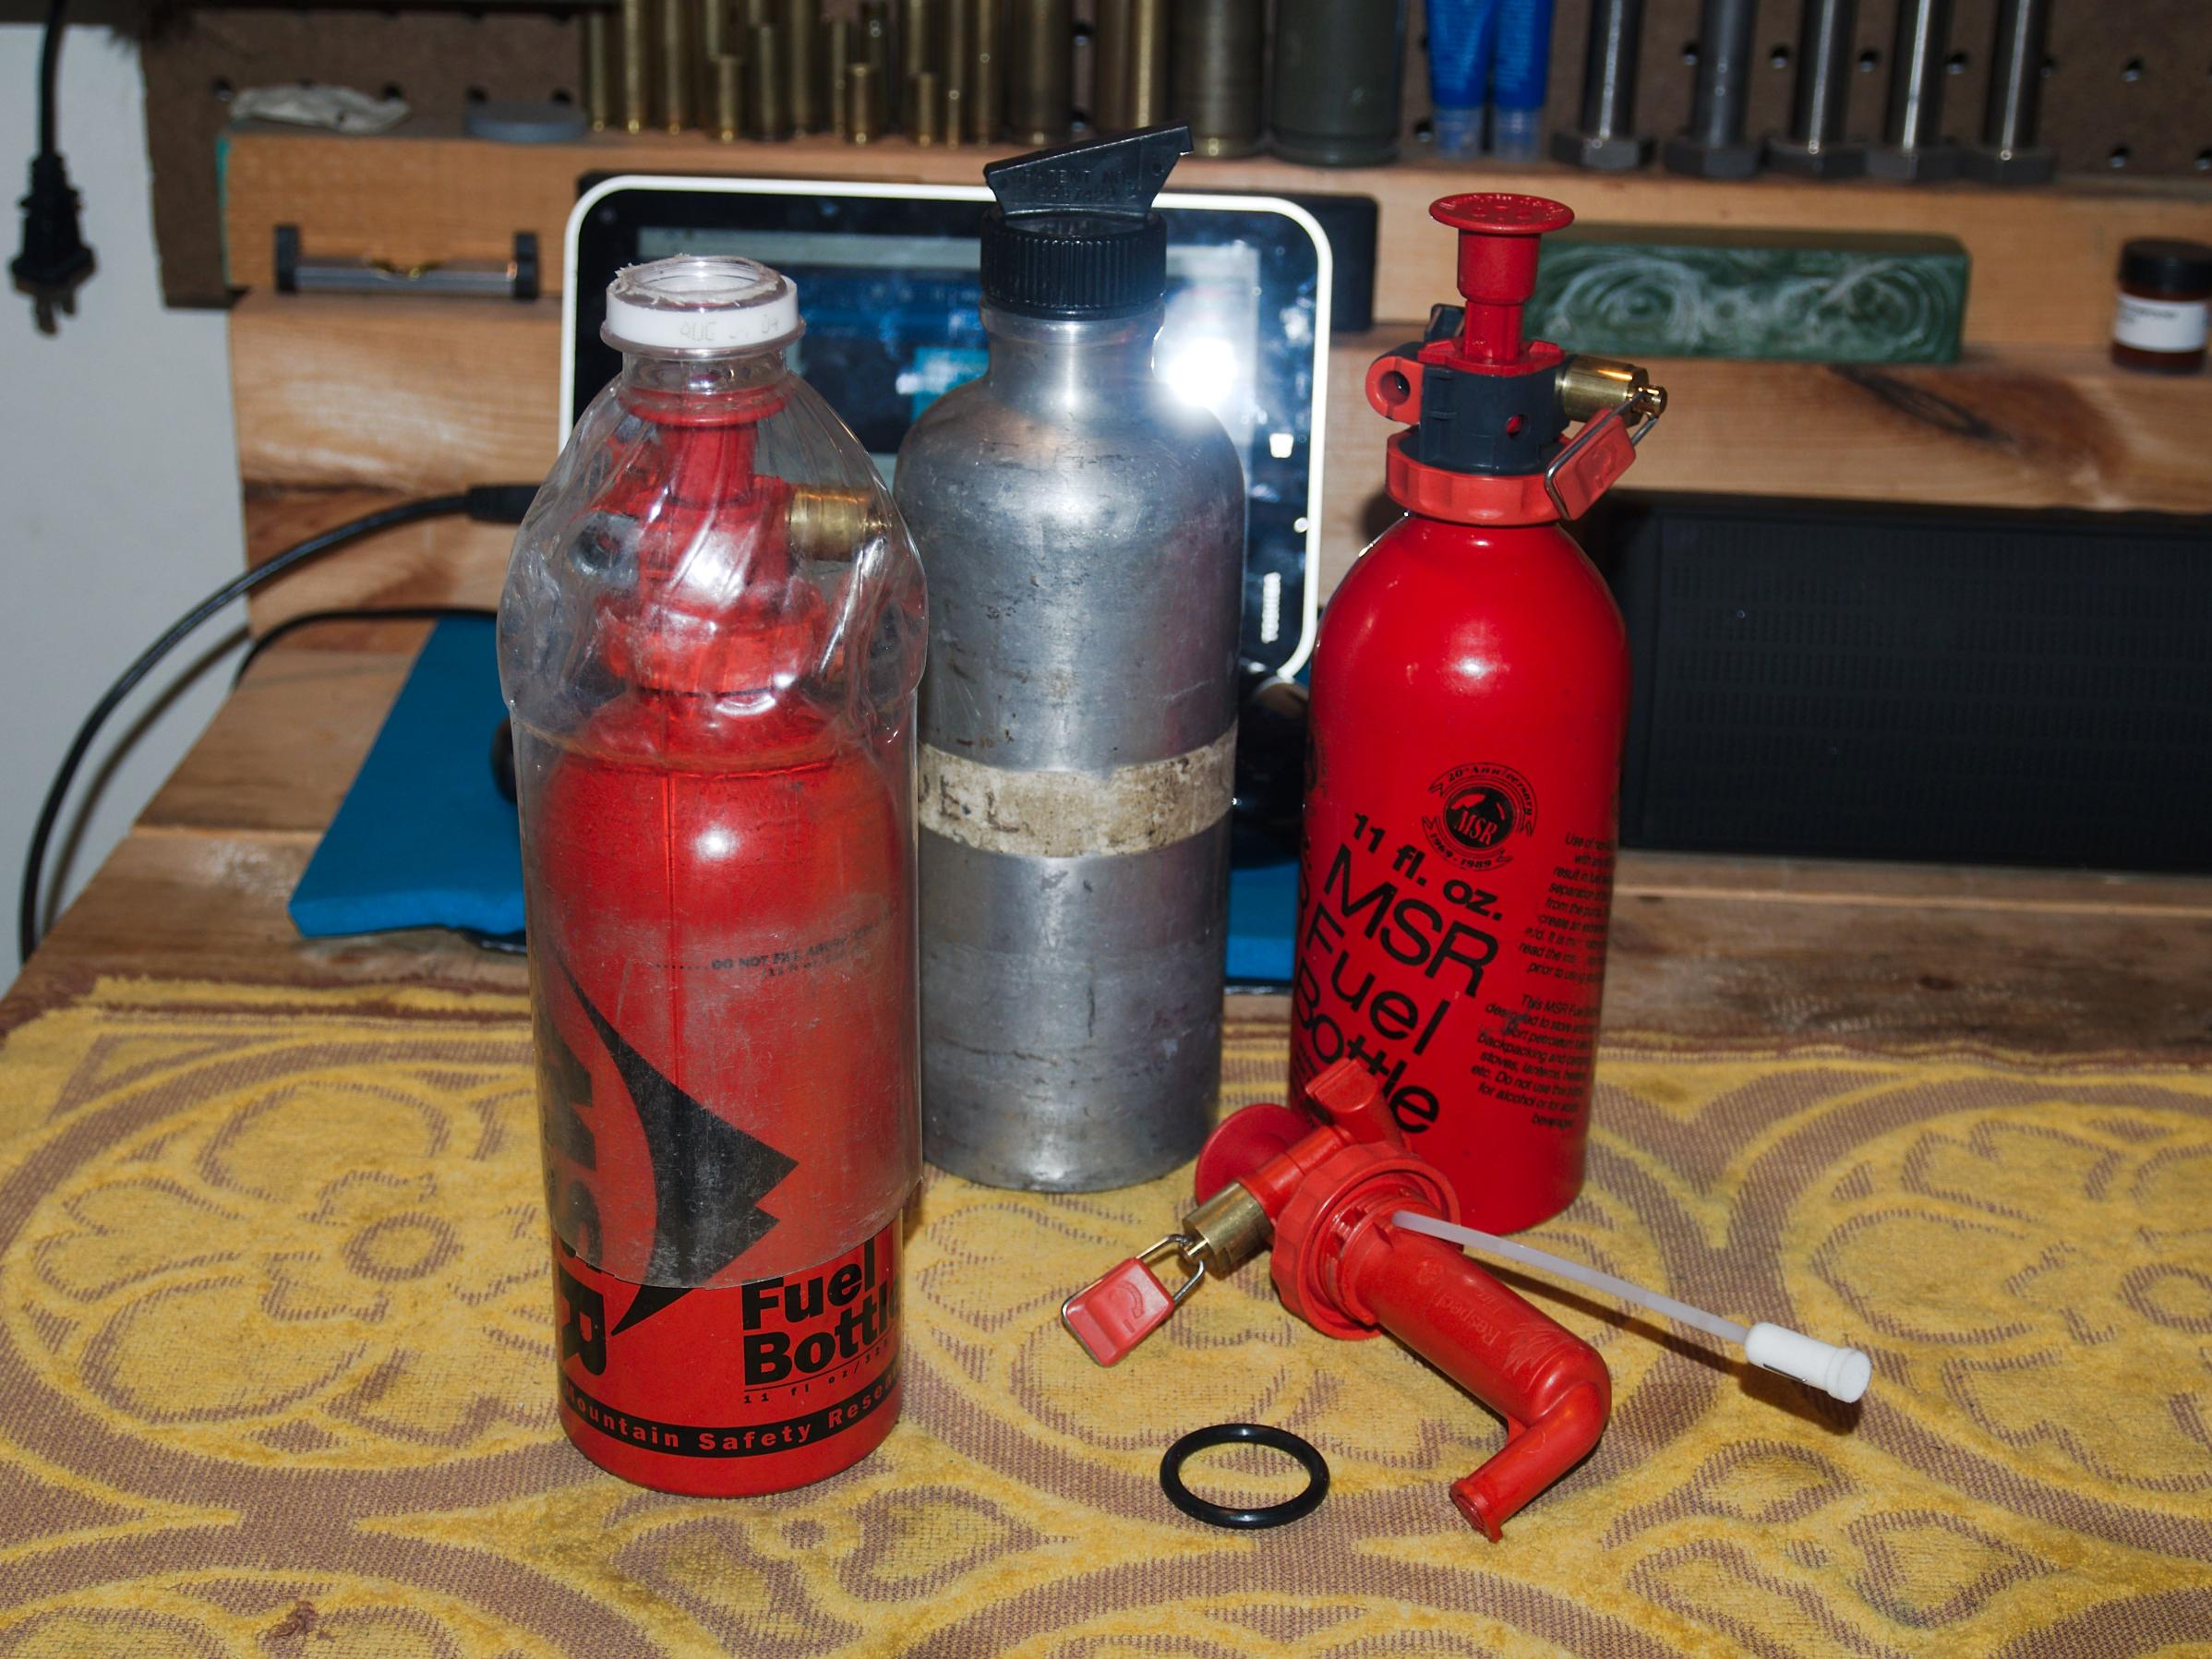 BWCA MSR fuel bottle replacements and pump stuff Boundary